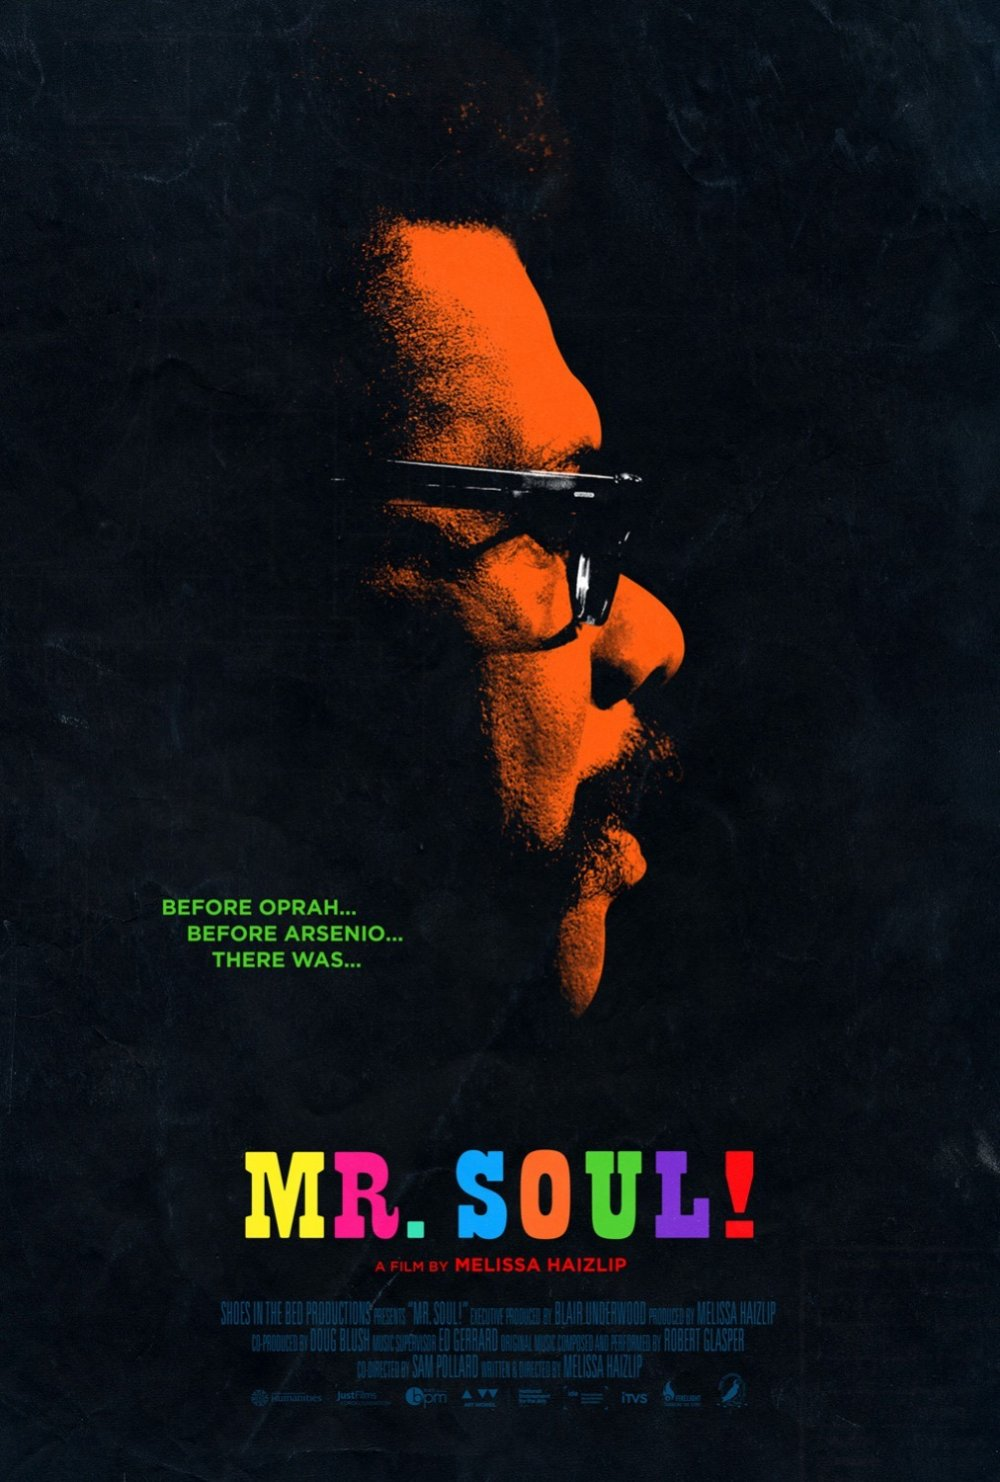 <strong>Mr. Soul!</strong> – This is a heartfelt and politically engaged profile of Ellis Haizlip, the openly gay host of the groundbreaking PBS all-black variety show SOUL!